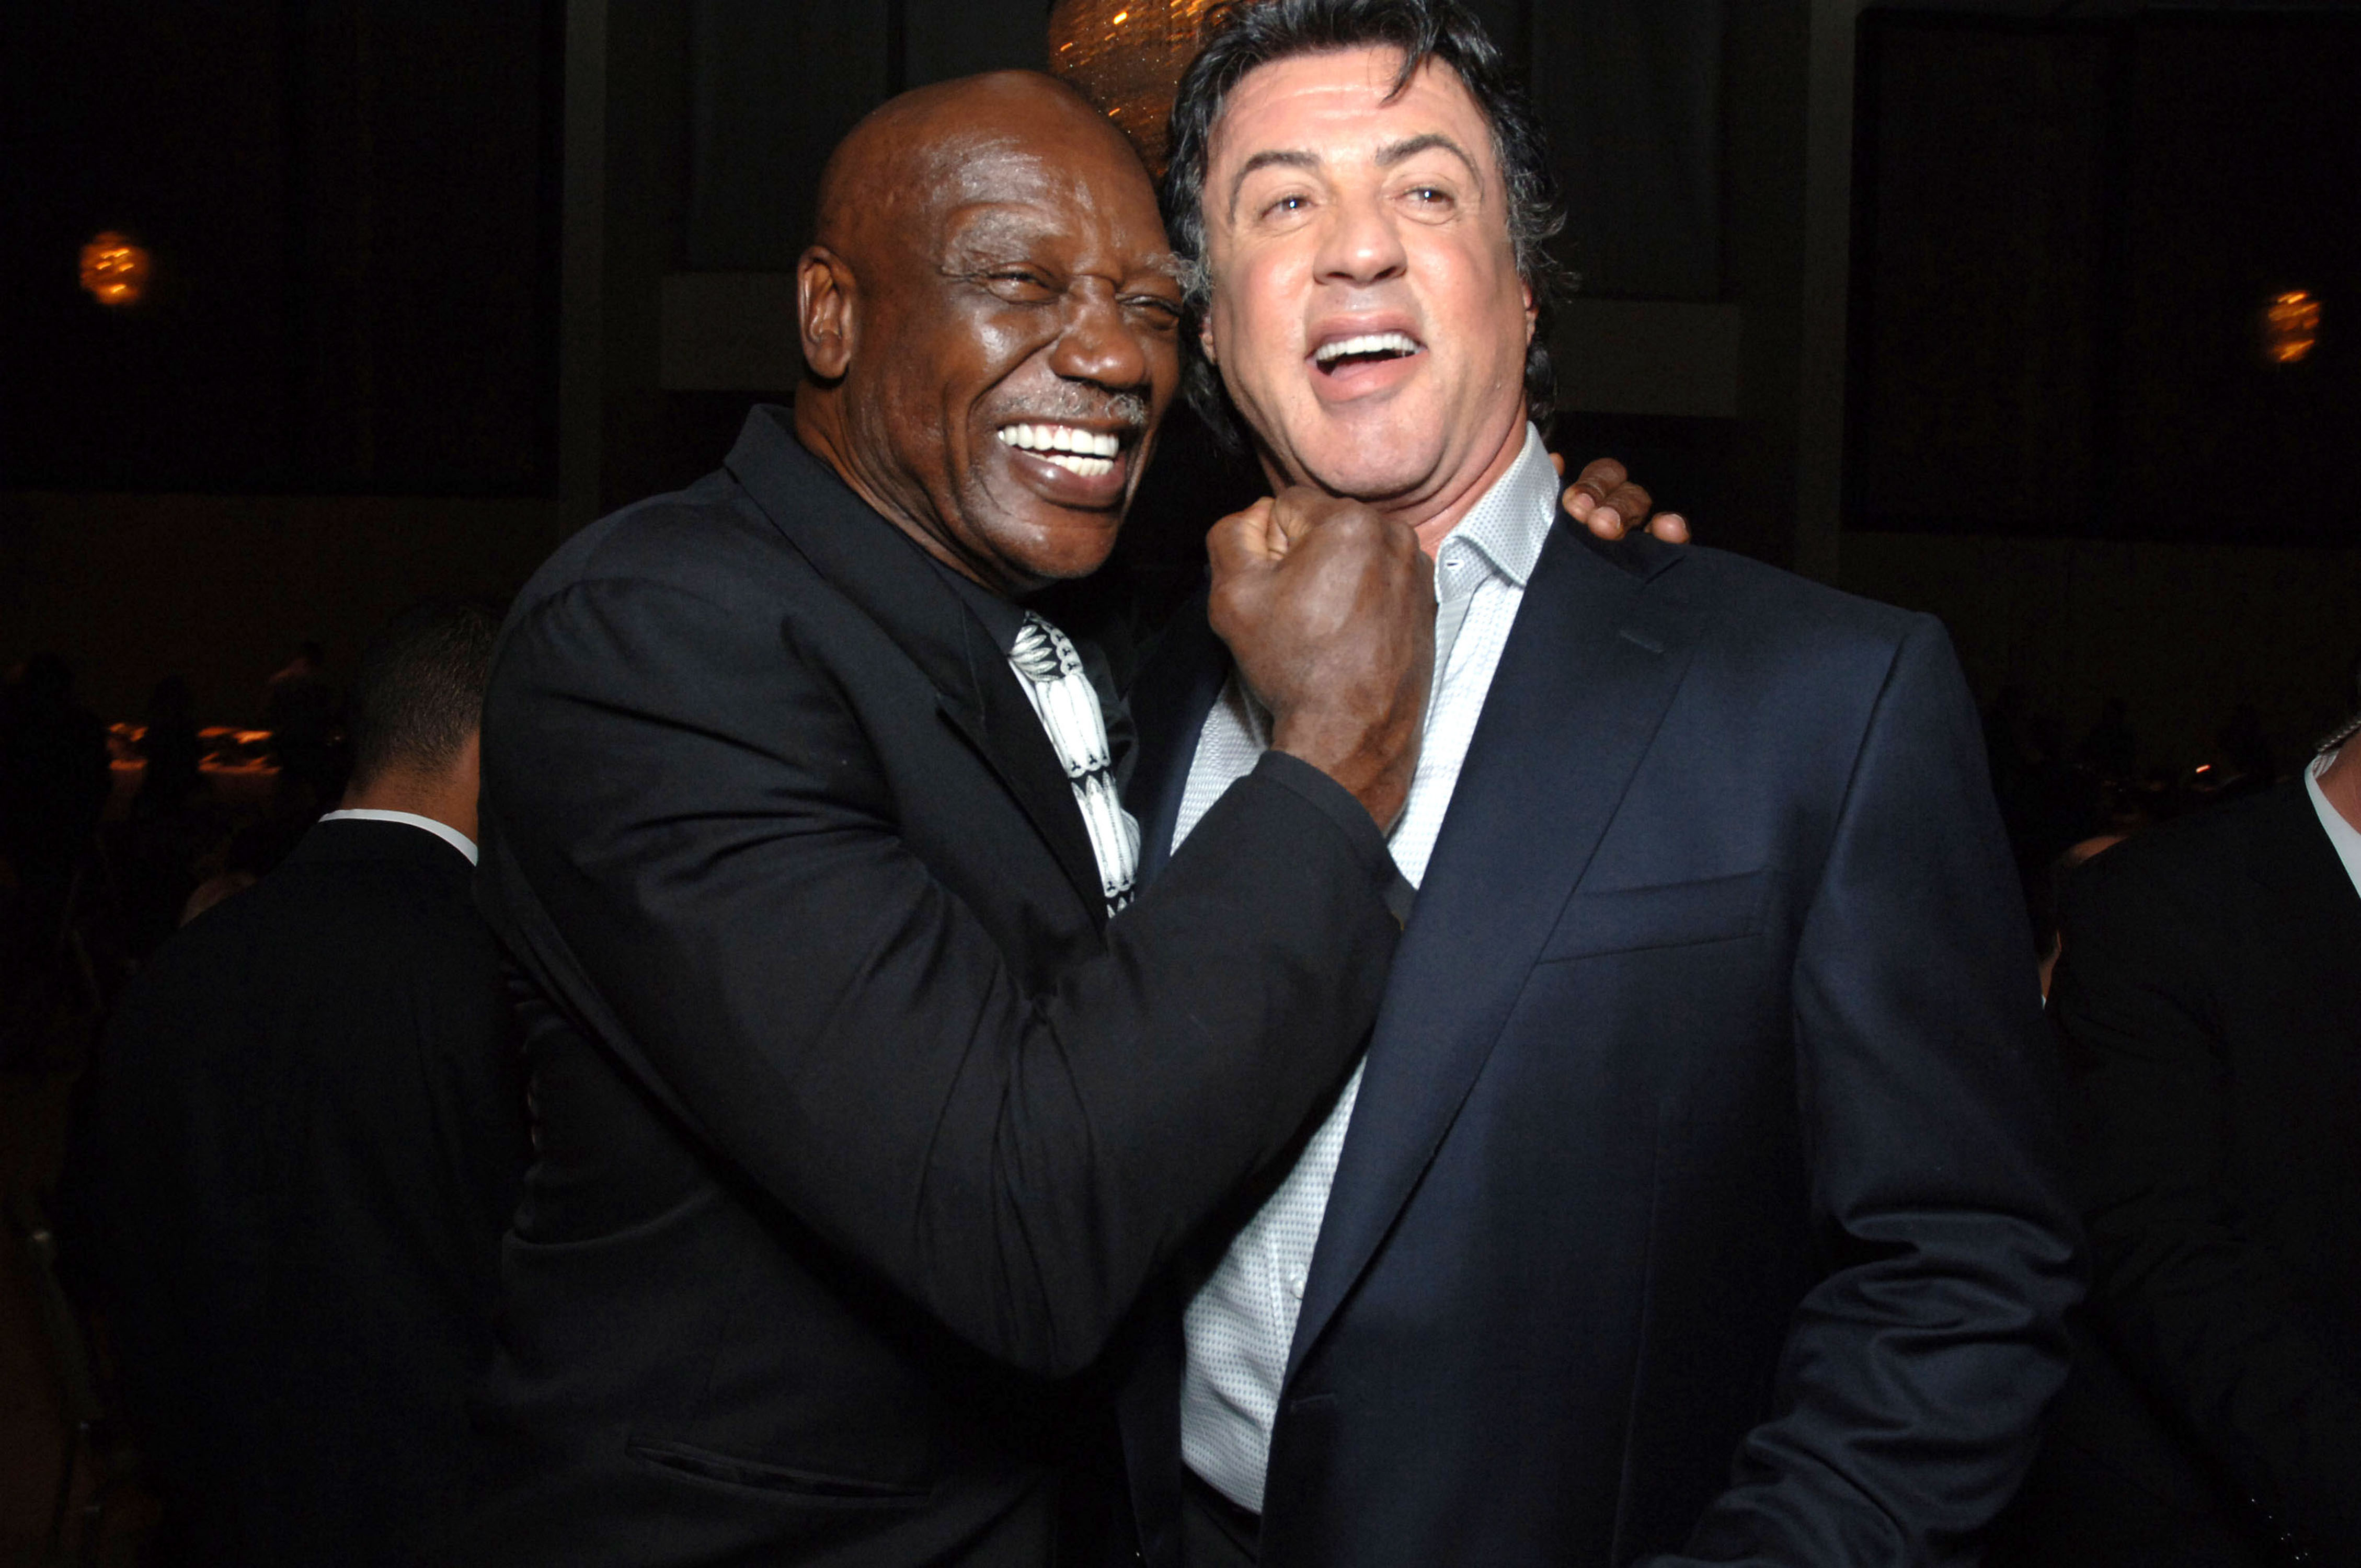 Tony Burton and Sylvester Stallone during 'Rocky Balboa' World Premiere - Arrivals at Grauman's Chinese Theatre in Hollywood, California, United States.